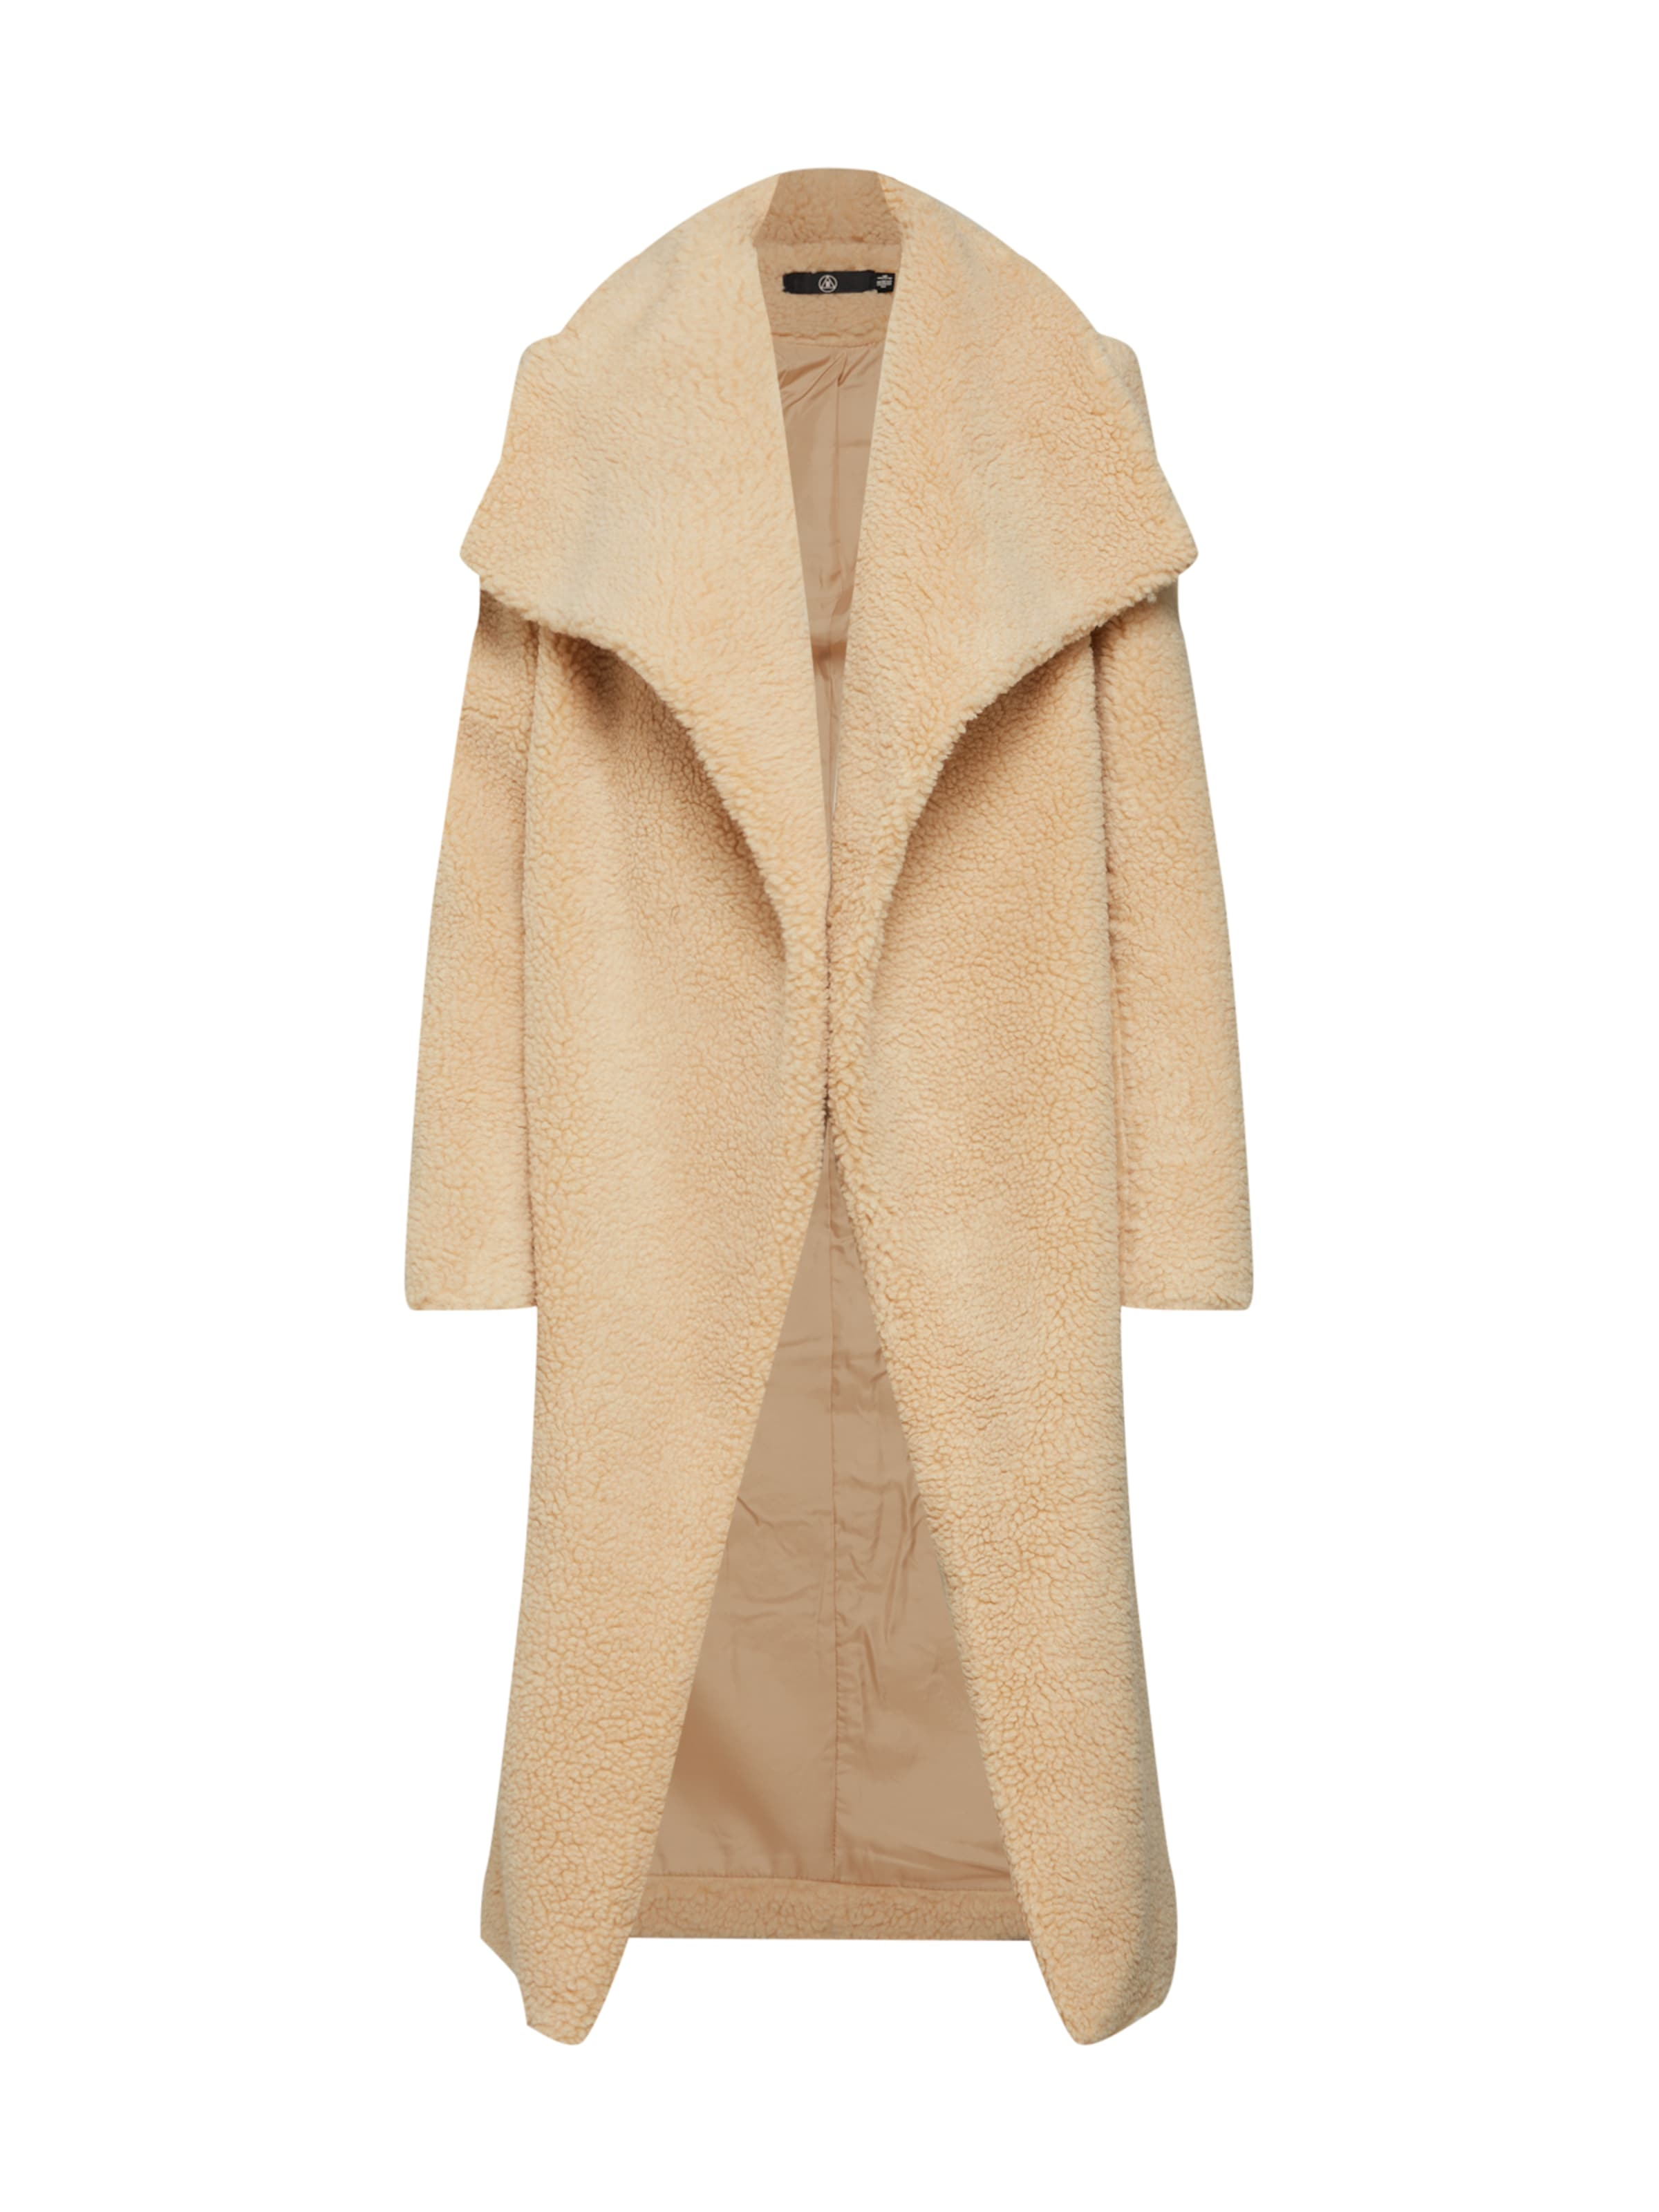 'waterfall En Crème Teddy Manteau Coat' Missguided D'hiver gv6yIbY7f